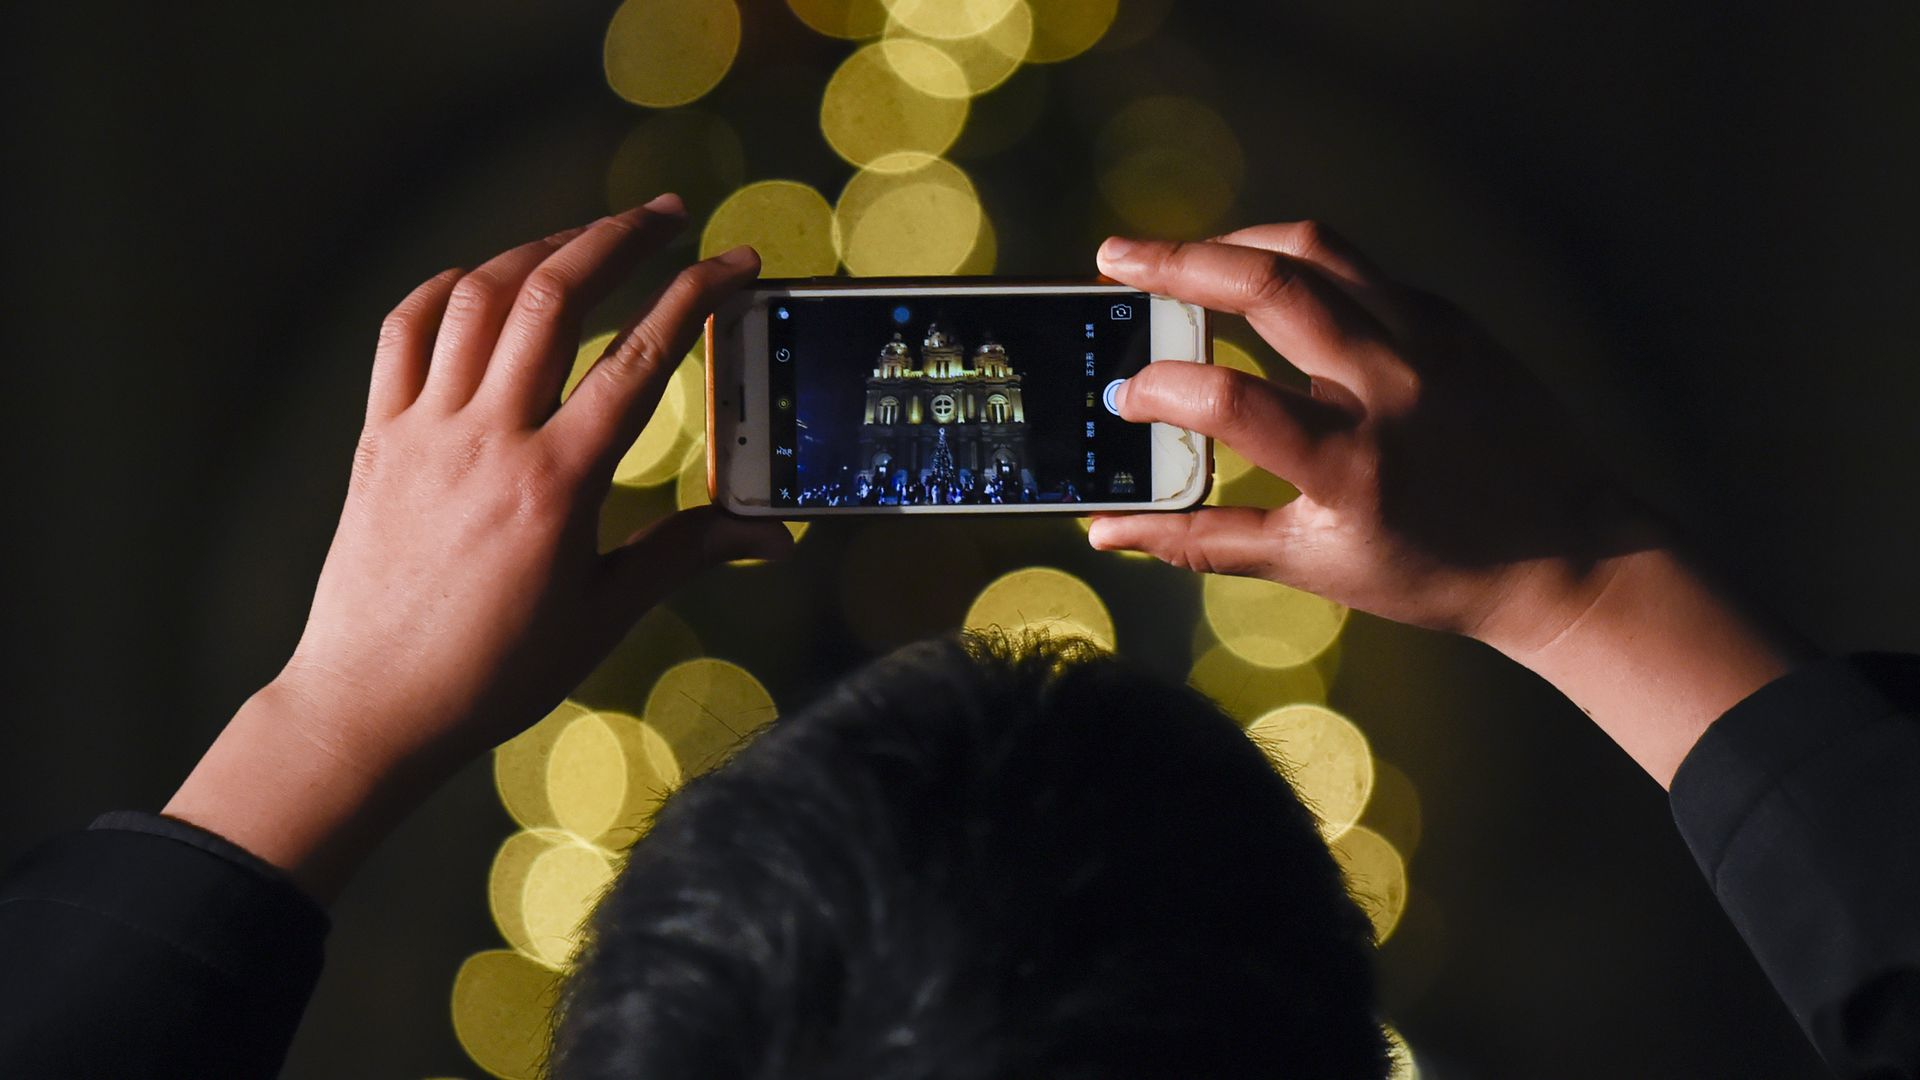 Man uses cell phone to take picture of Christmas lights, which are out of focus